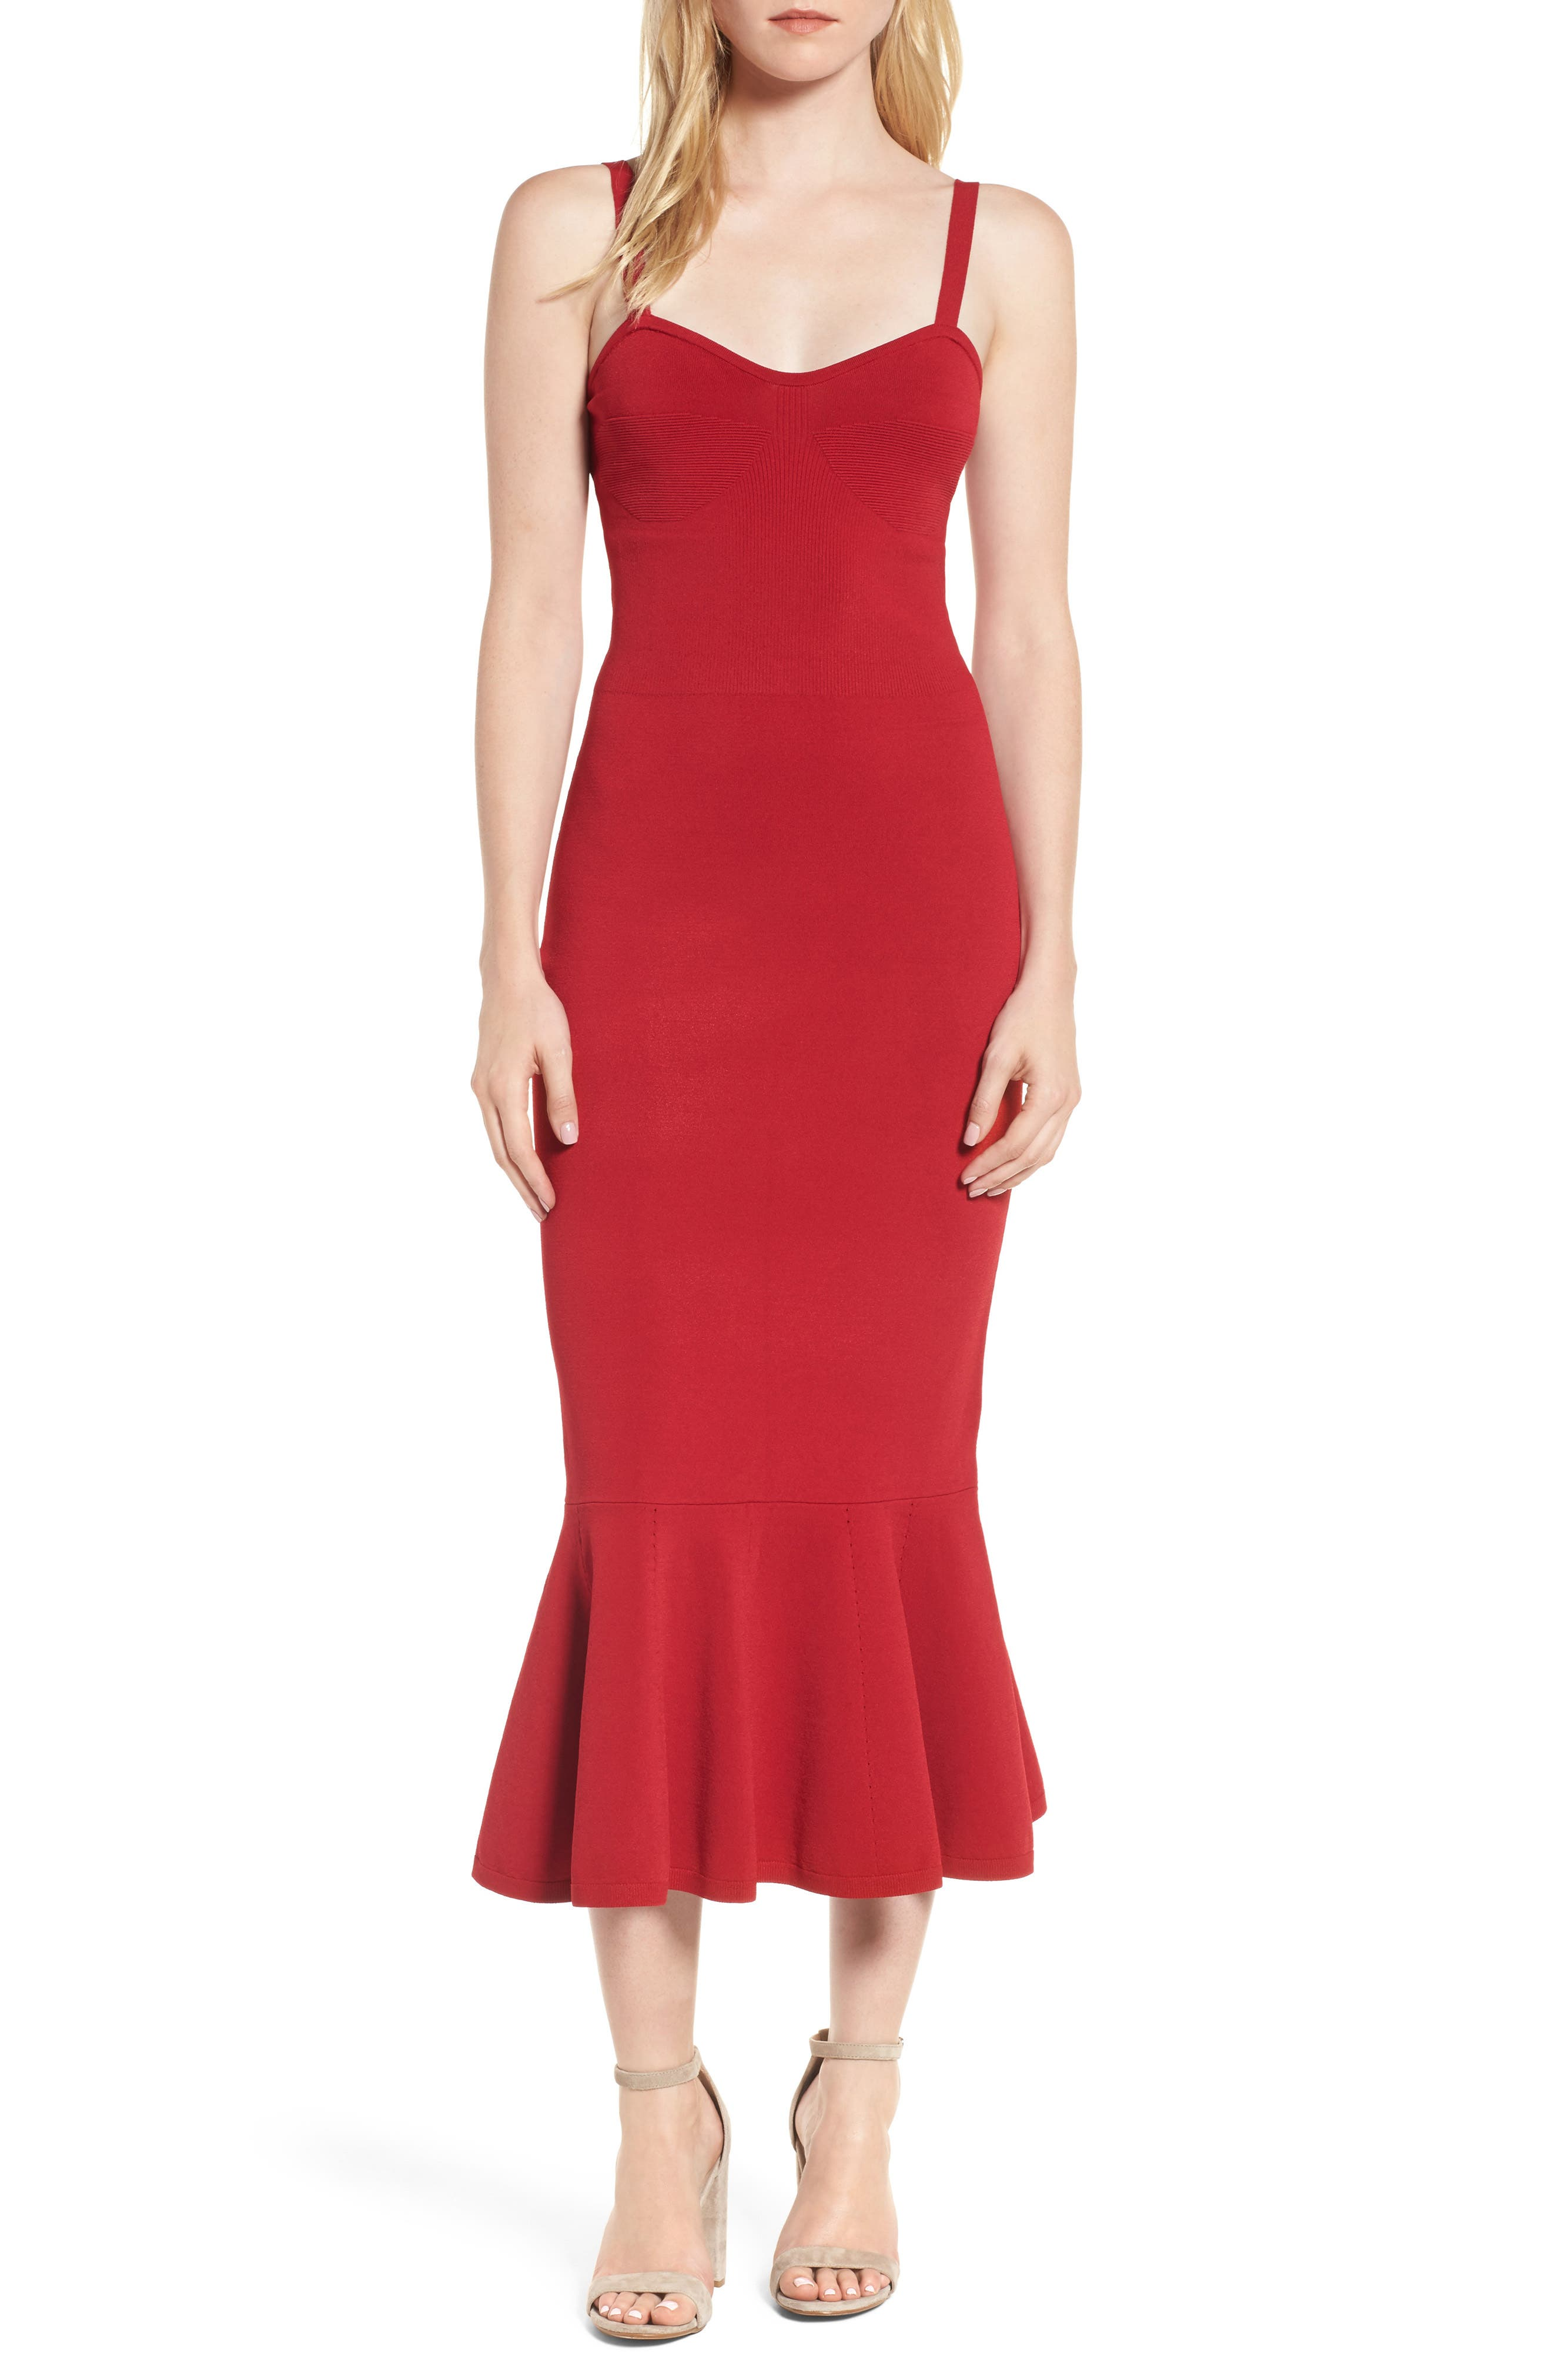 Ribbed Mermaid Dress,                         Main,                         color, Red Jester